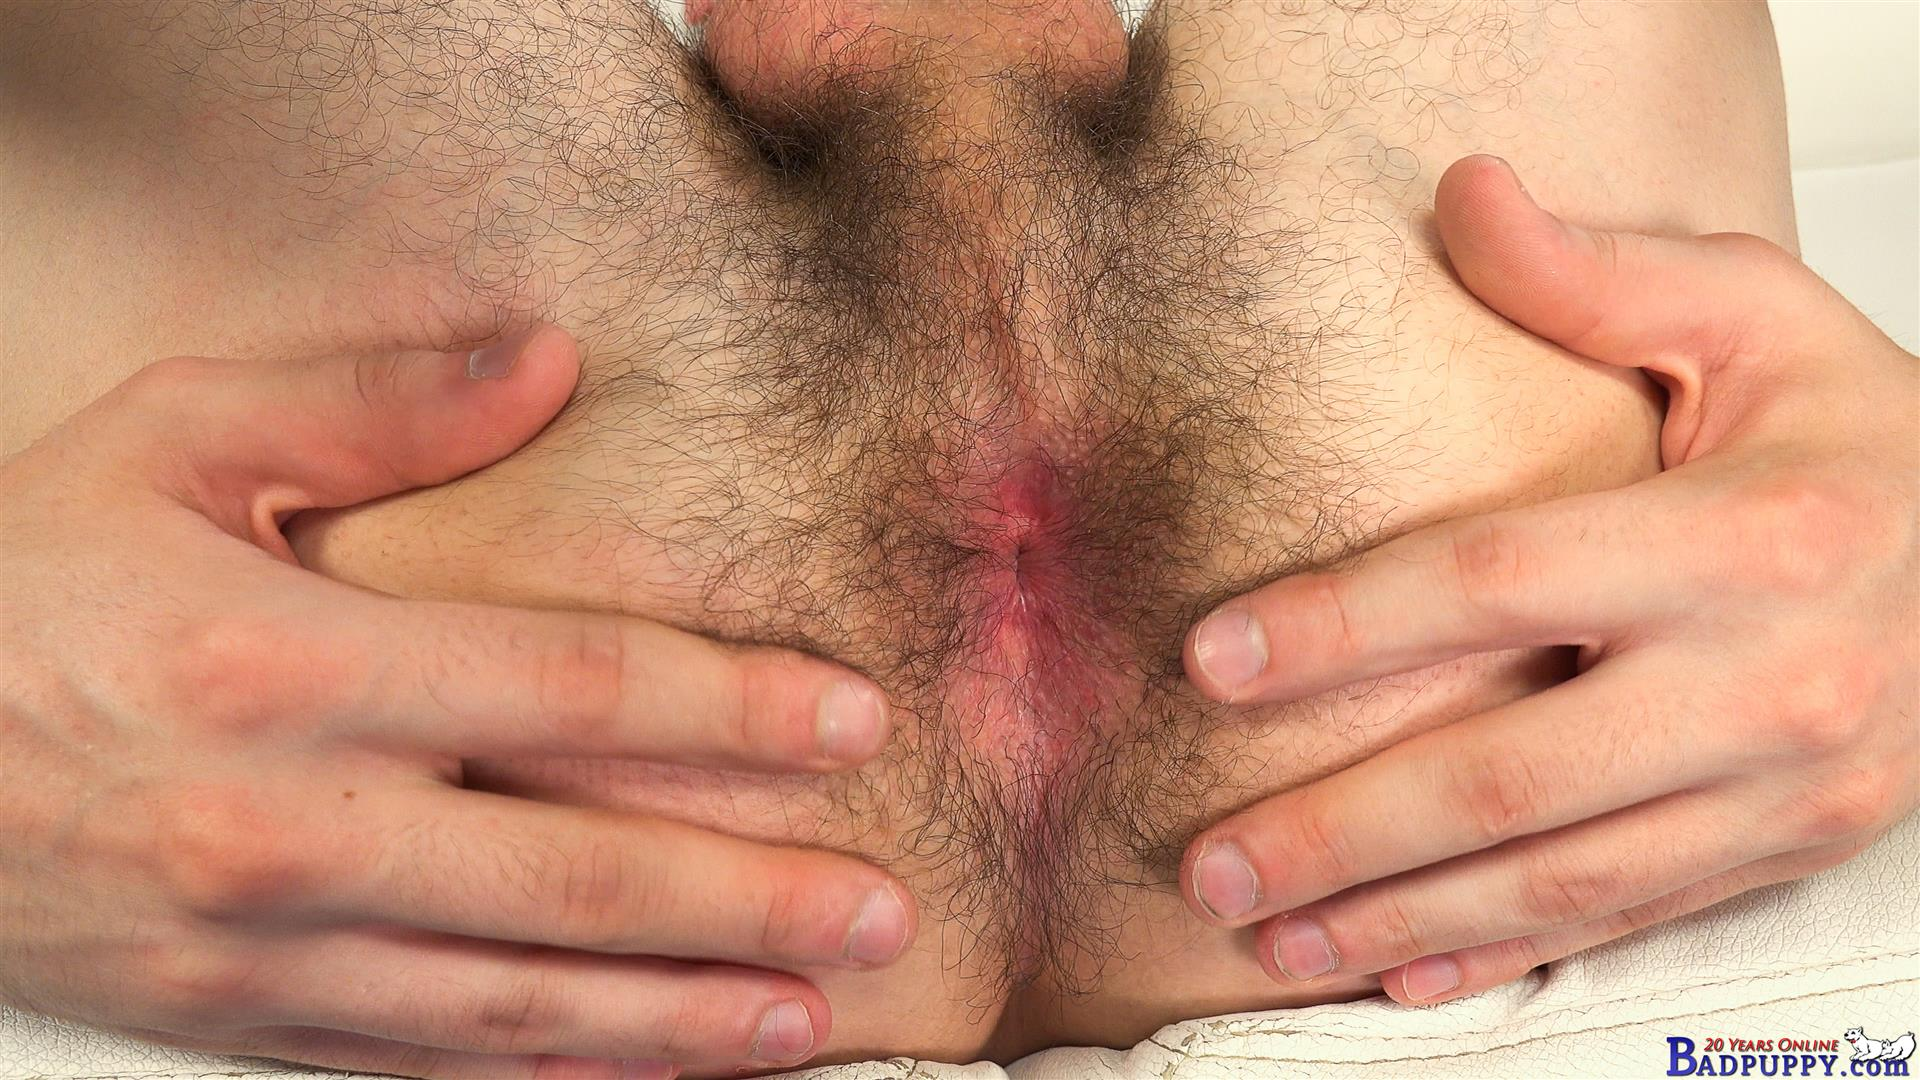 Xtube hairy butt